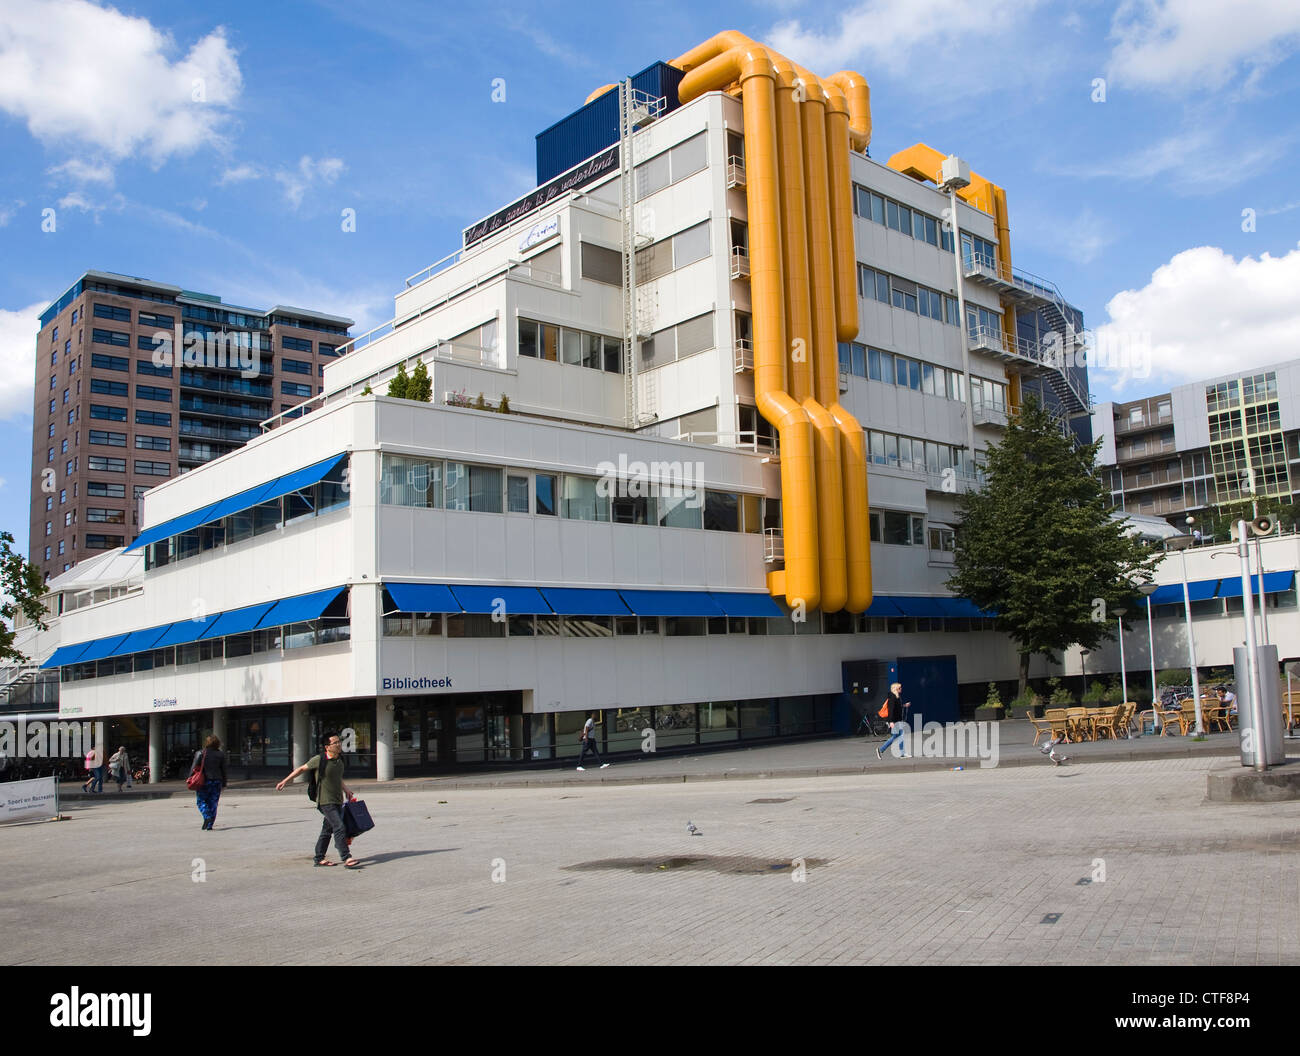 Modern architecture of the central library centrale bibliotheek stock photo royalty free image - Moderne bibliotheek ...